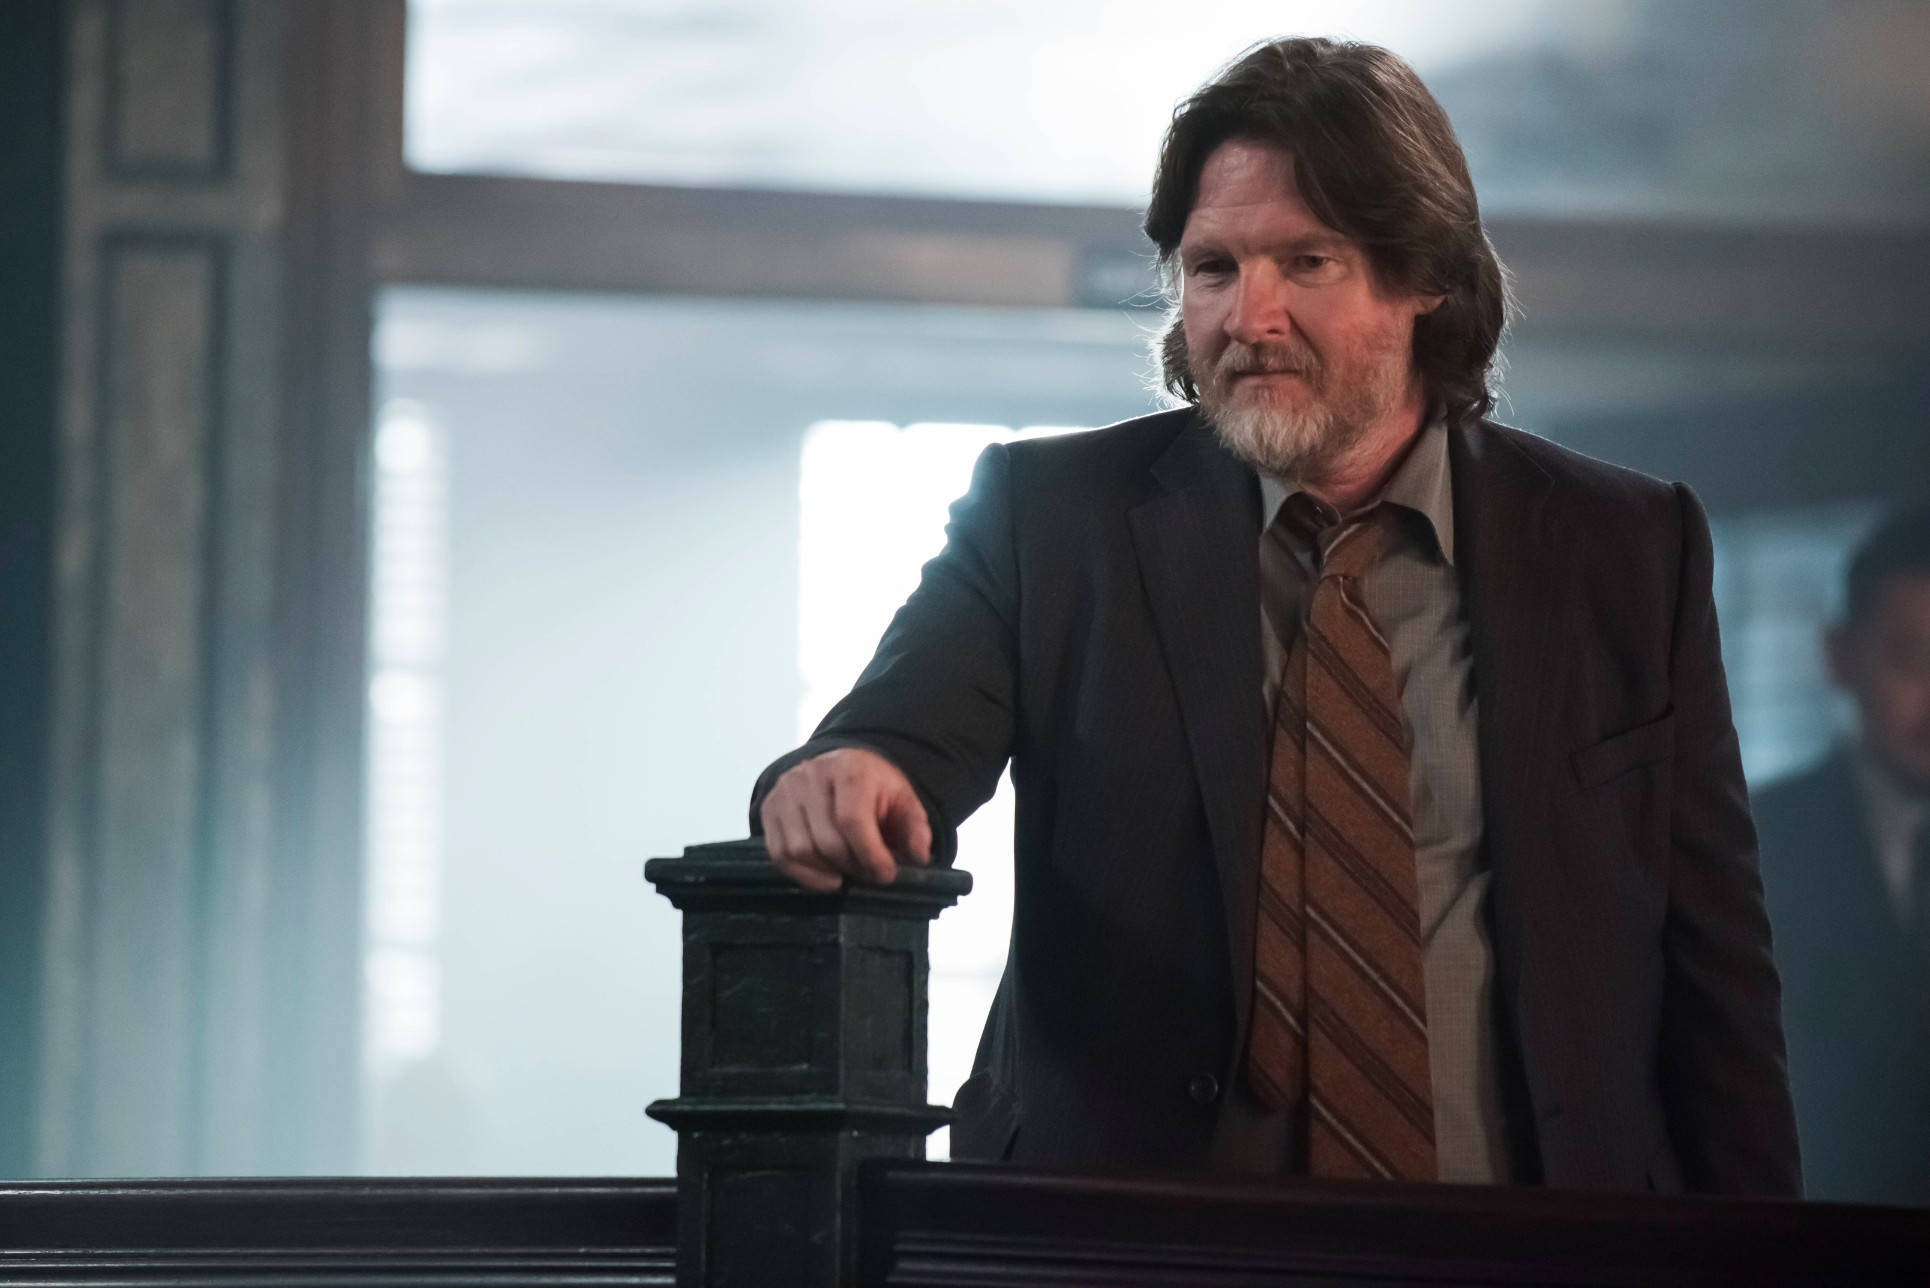 New Images From Gotham Season 3, Episode 5 Released